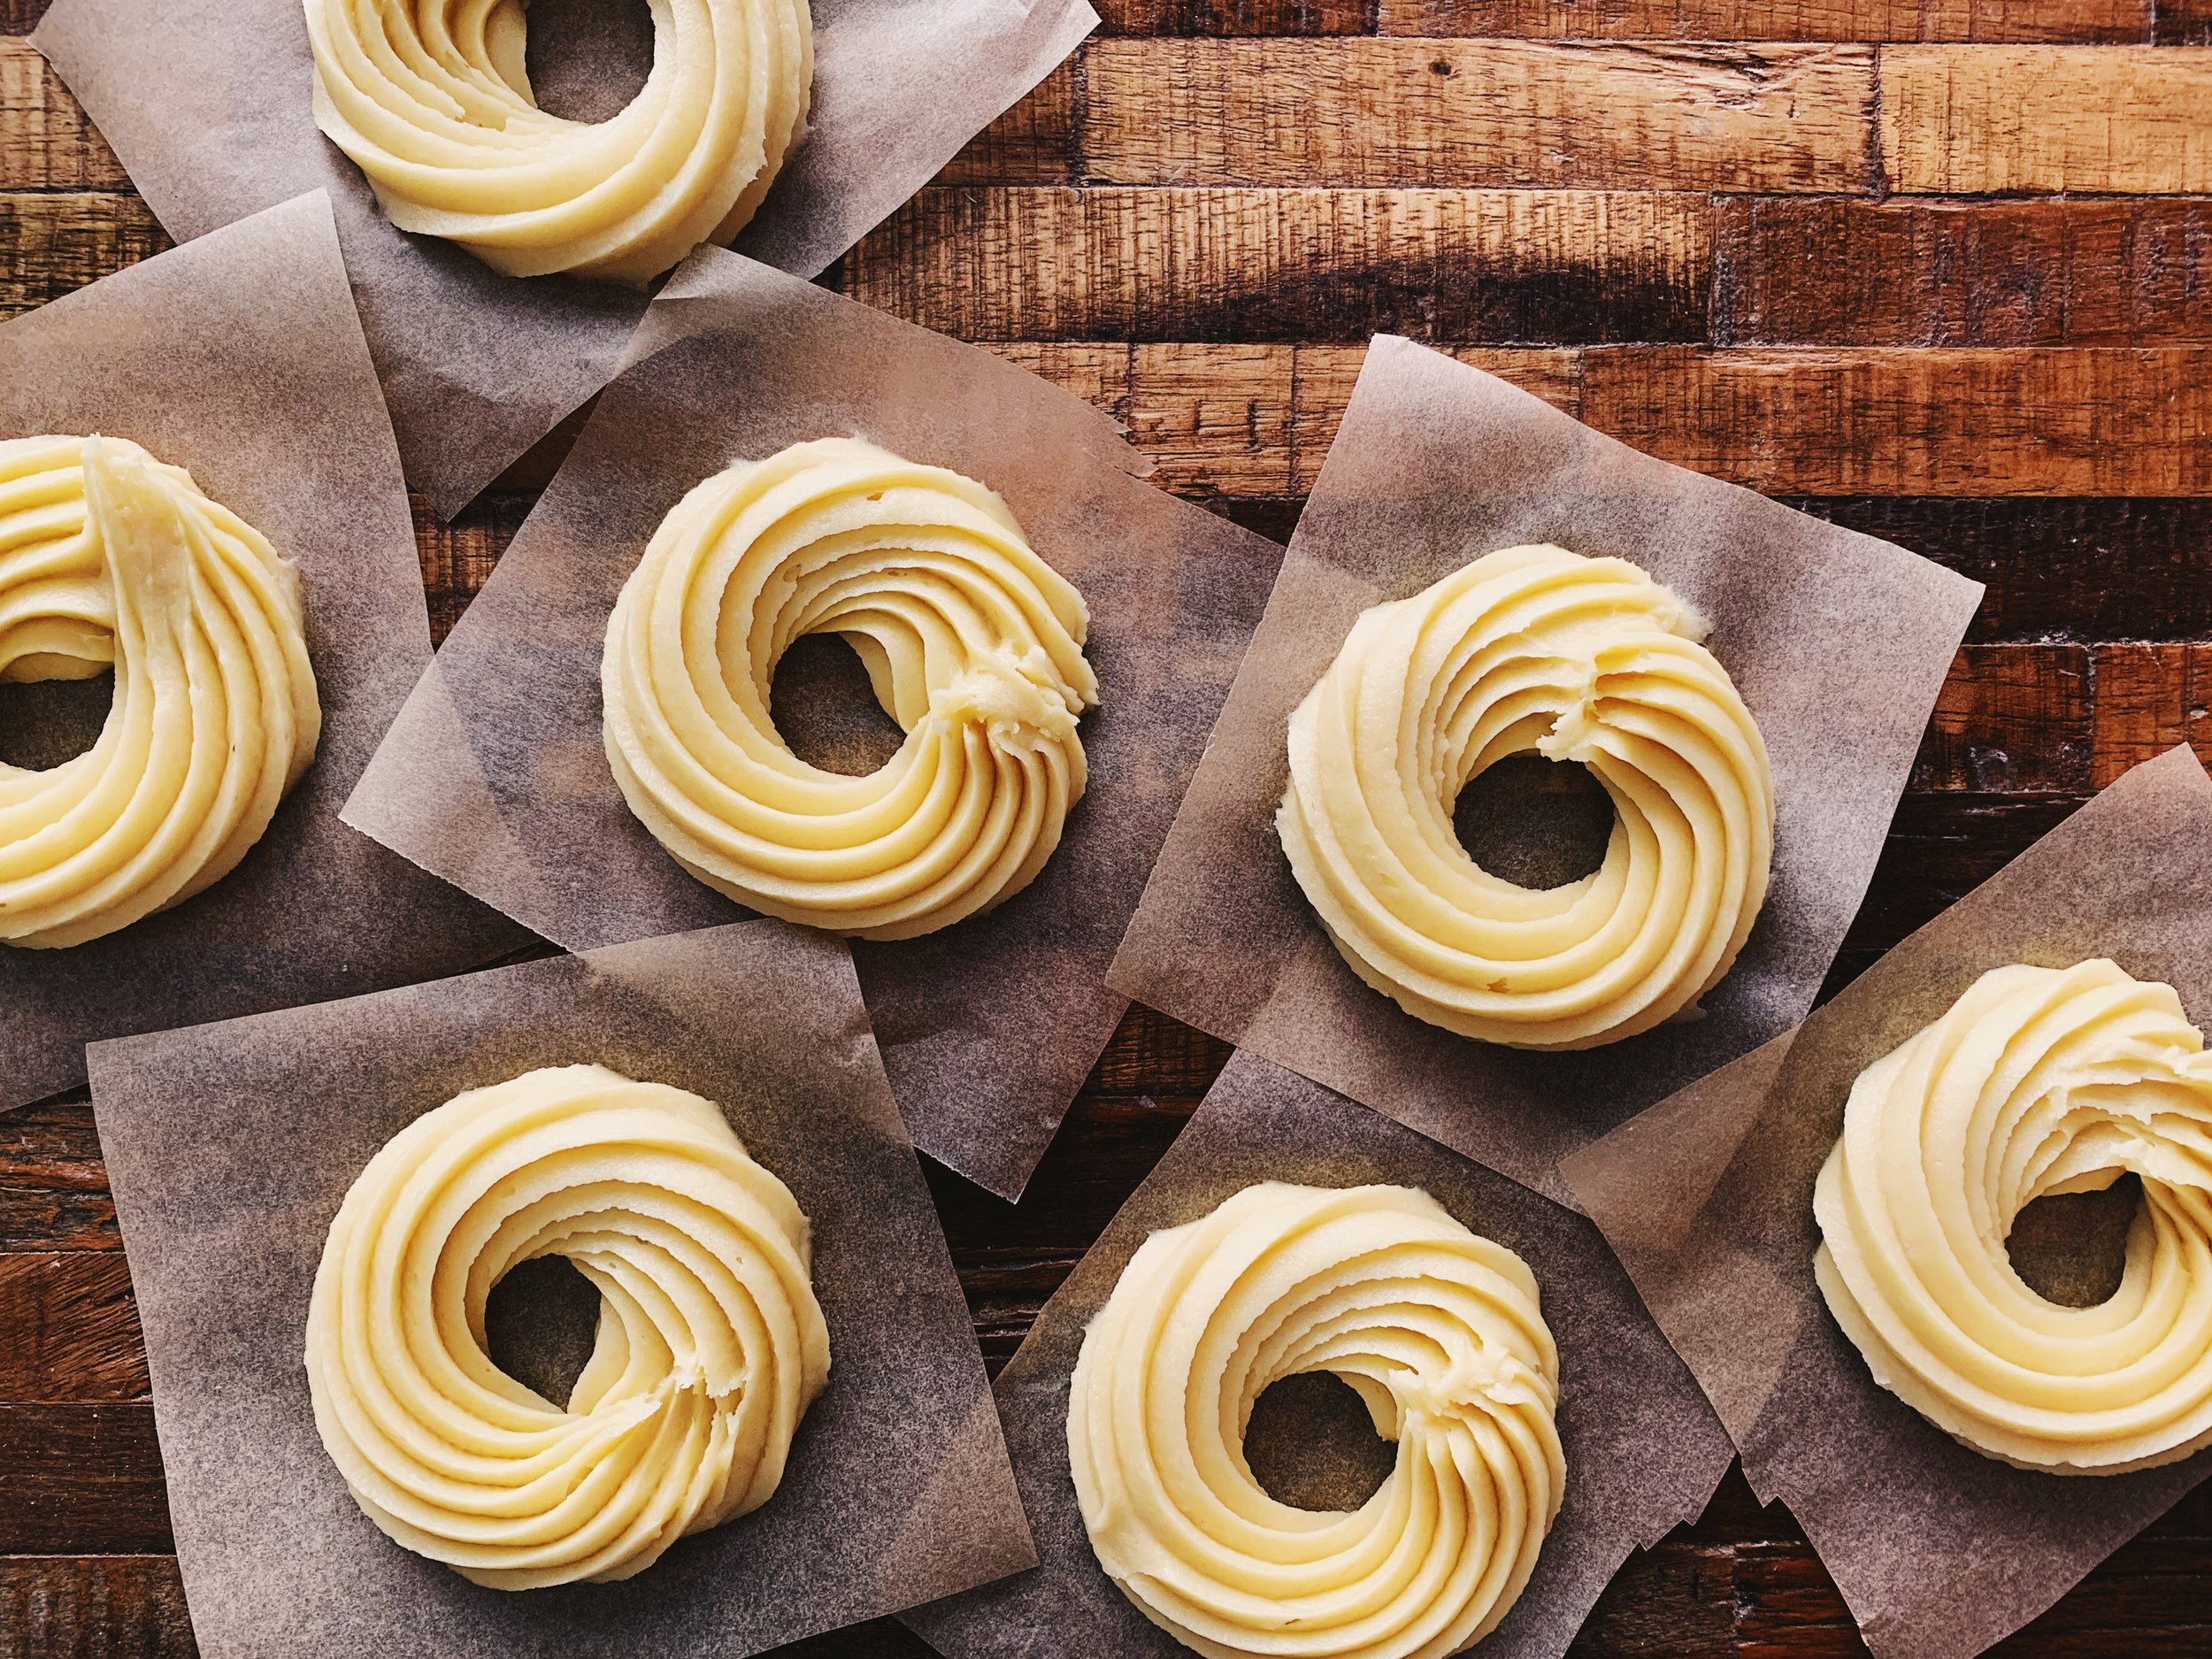 The crullers will be piped onto a square piece of parchment paper for easy transfer into the hot oil.